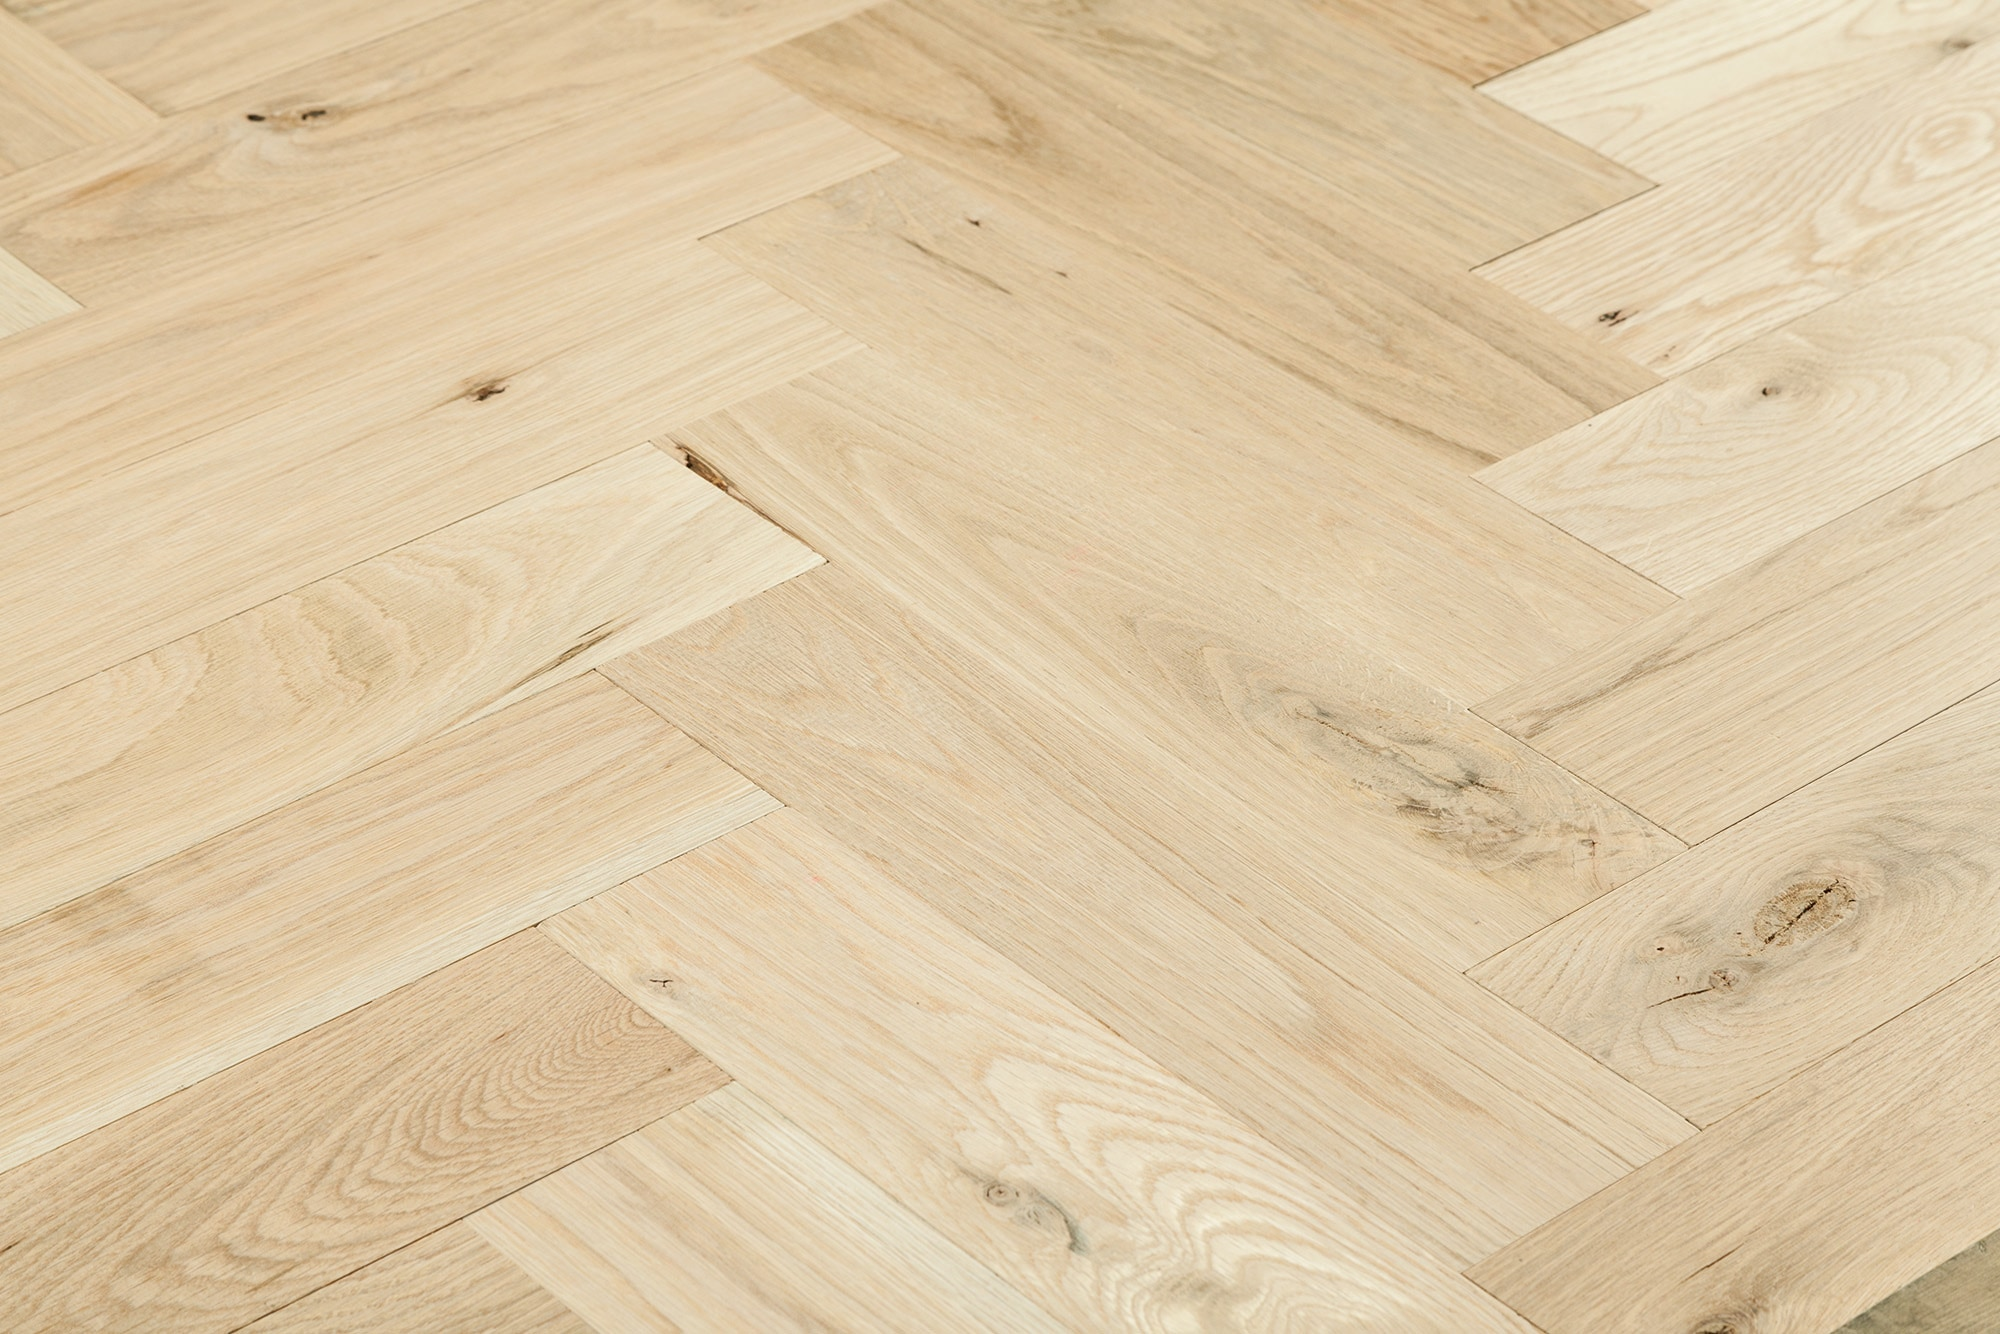 quarter a plain we cut mix pattern oak white pin flooring natural allowing live for get logs of unique the floors has is from sawn grain rift and